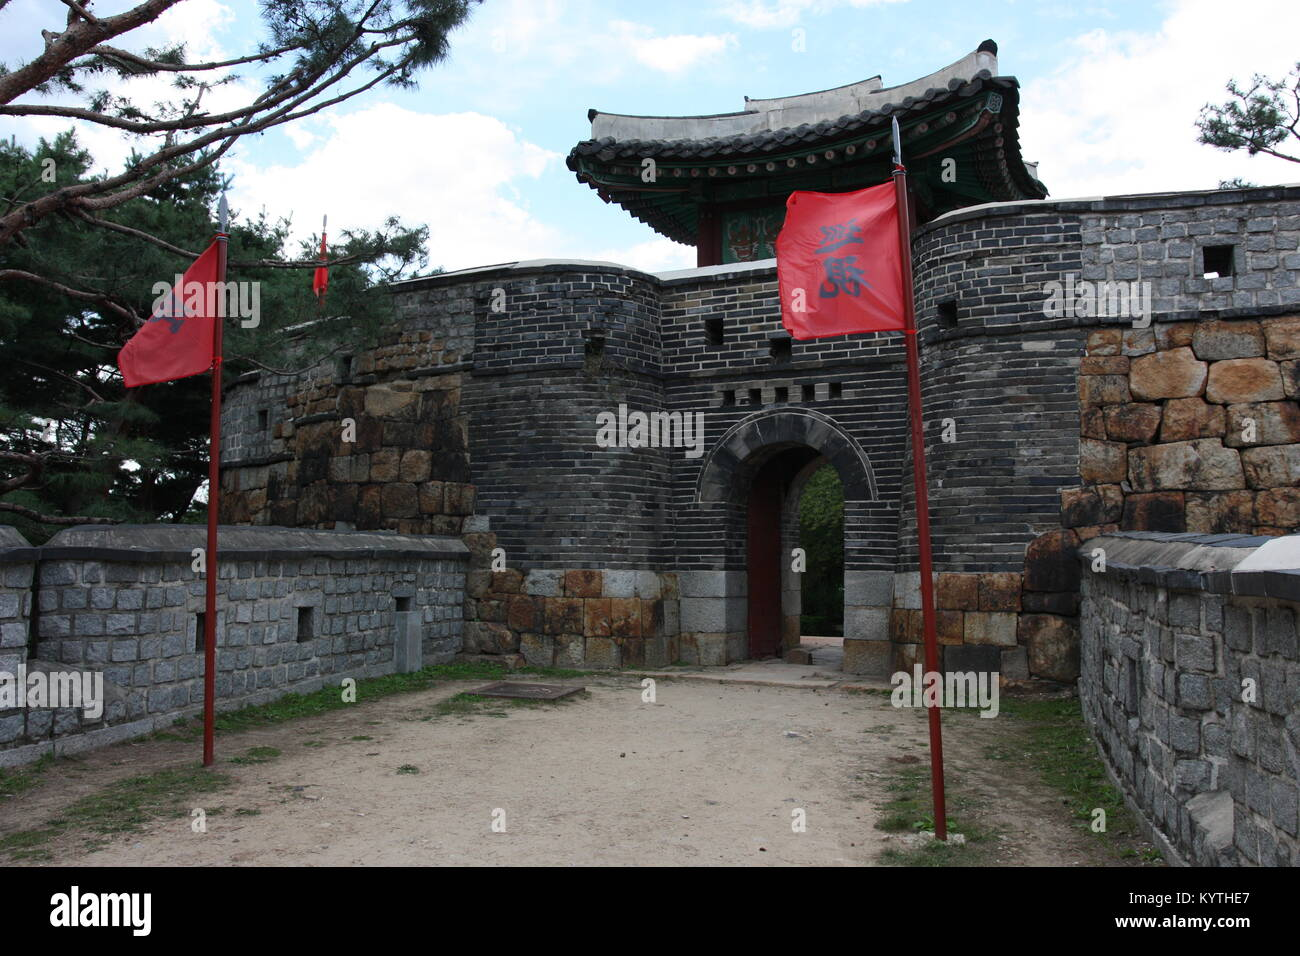 Gate in Hwaseong fortress in Suwon, Korea - Stock Image